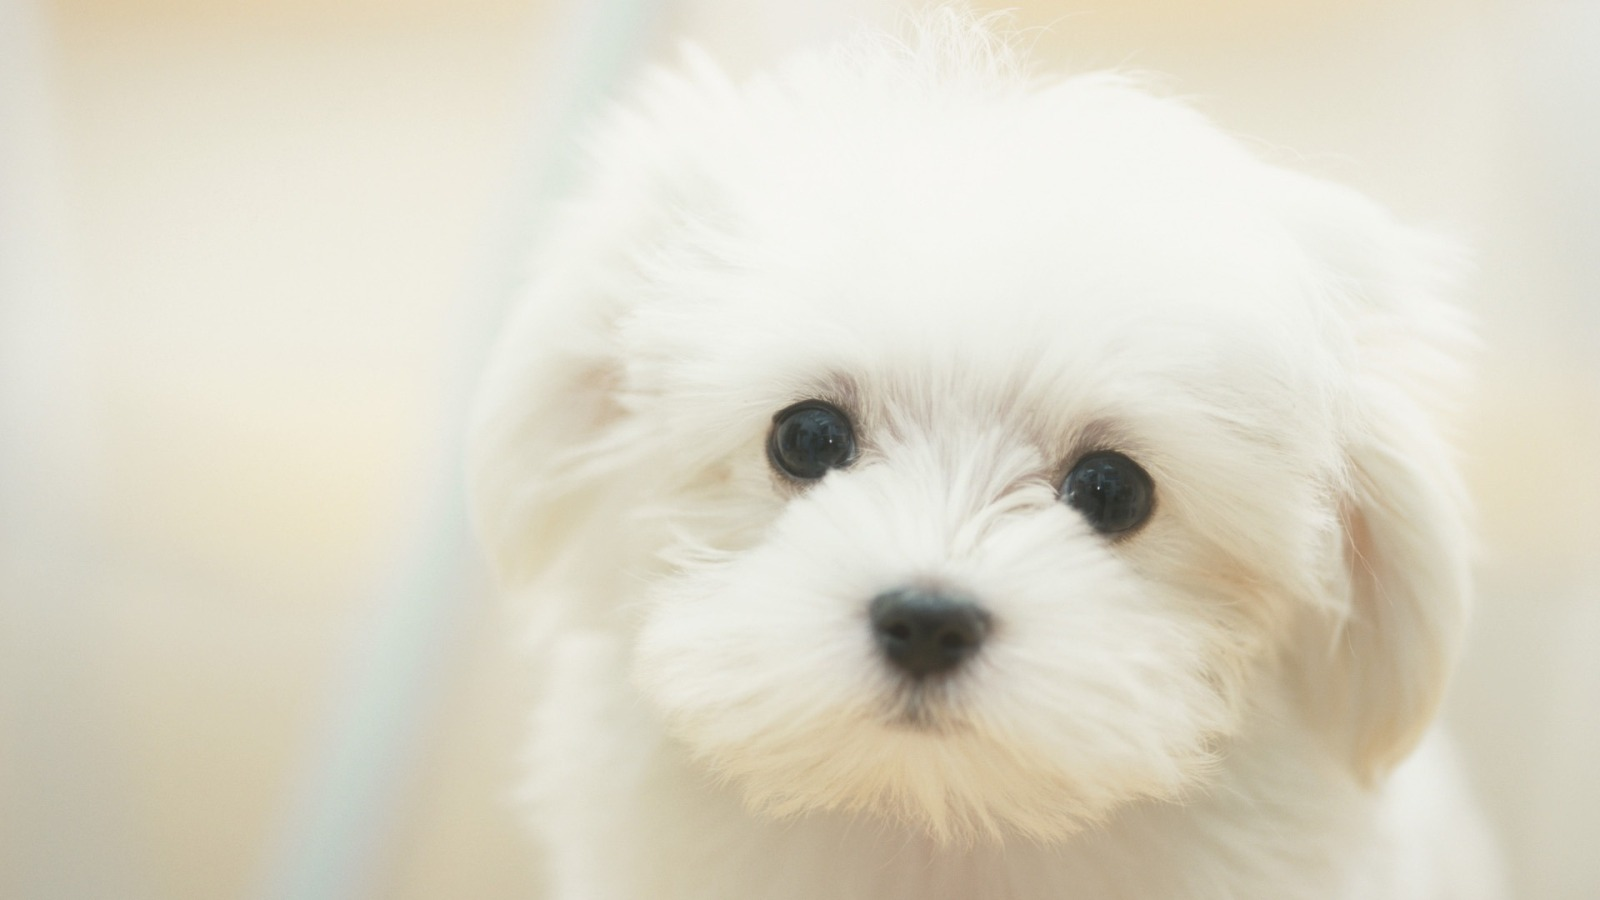 Cute Puppy wallpaper 1600x900 58332 1600x900